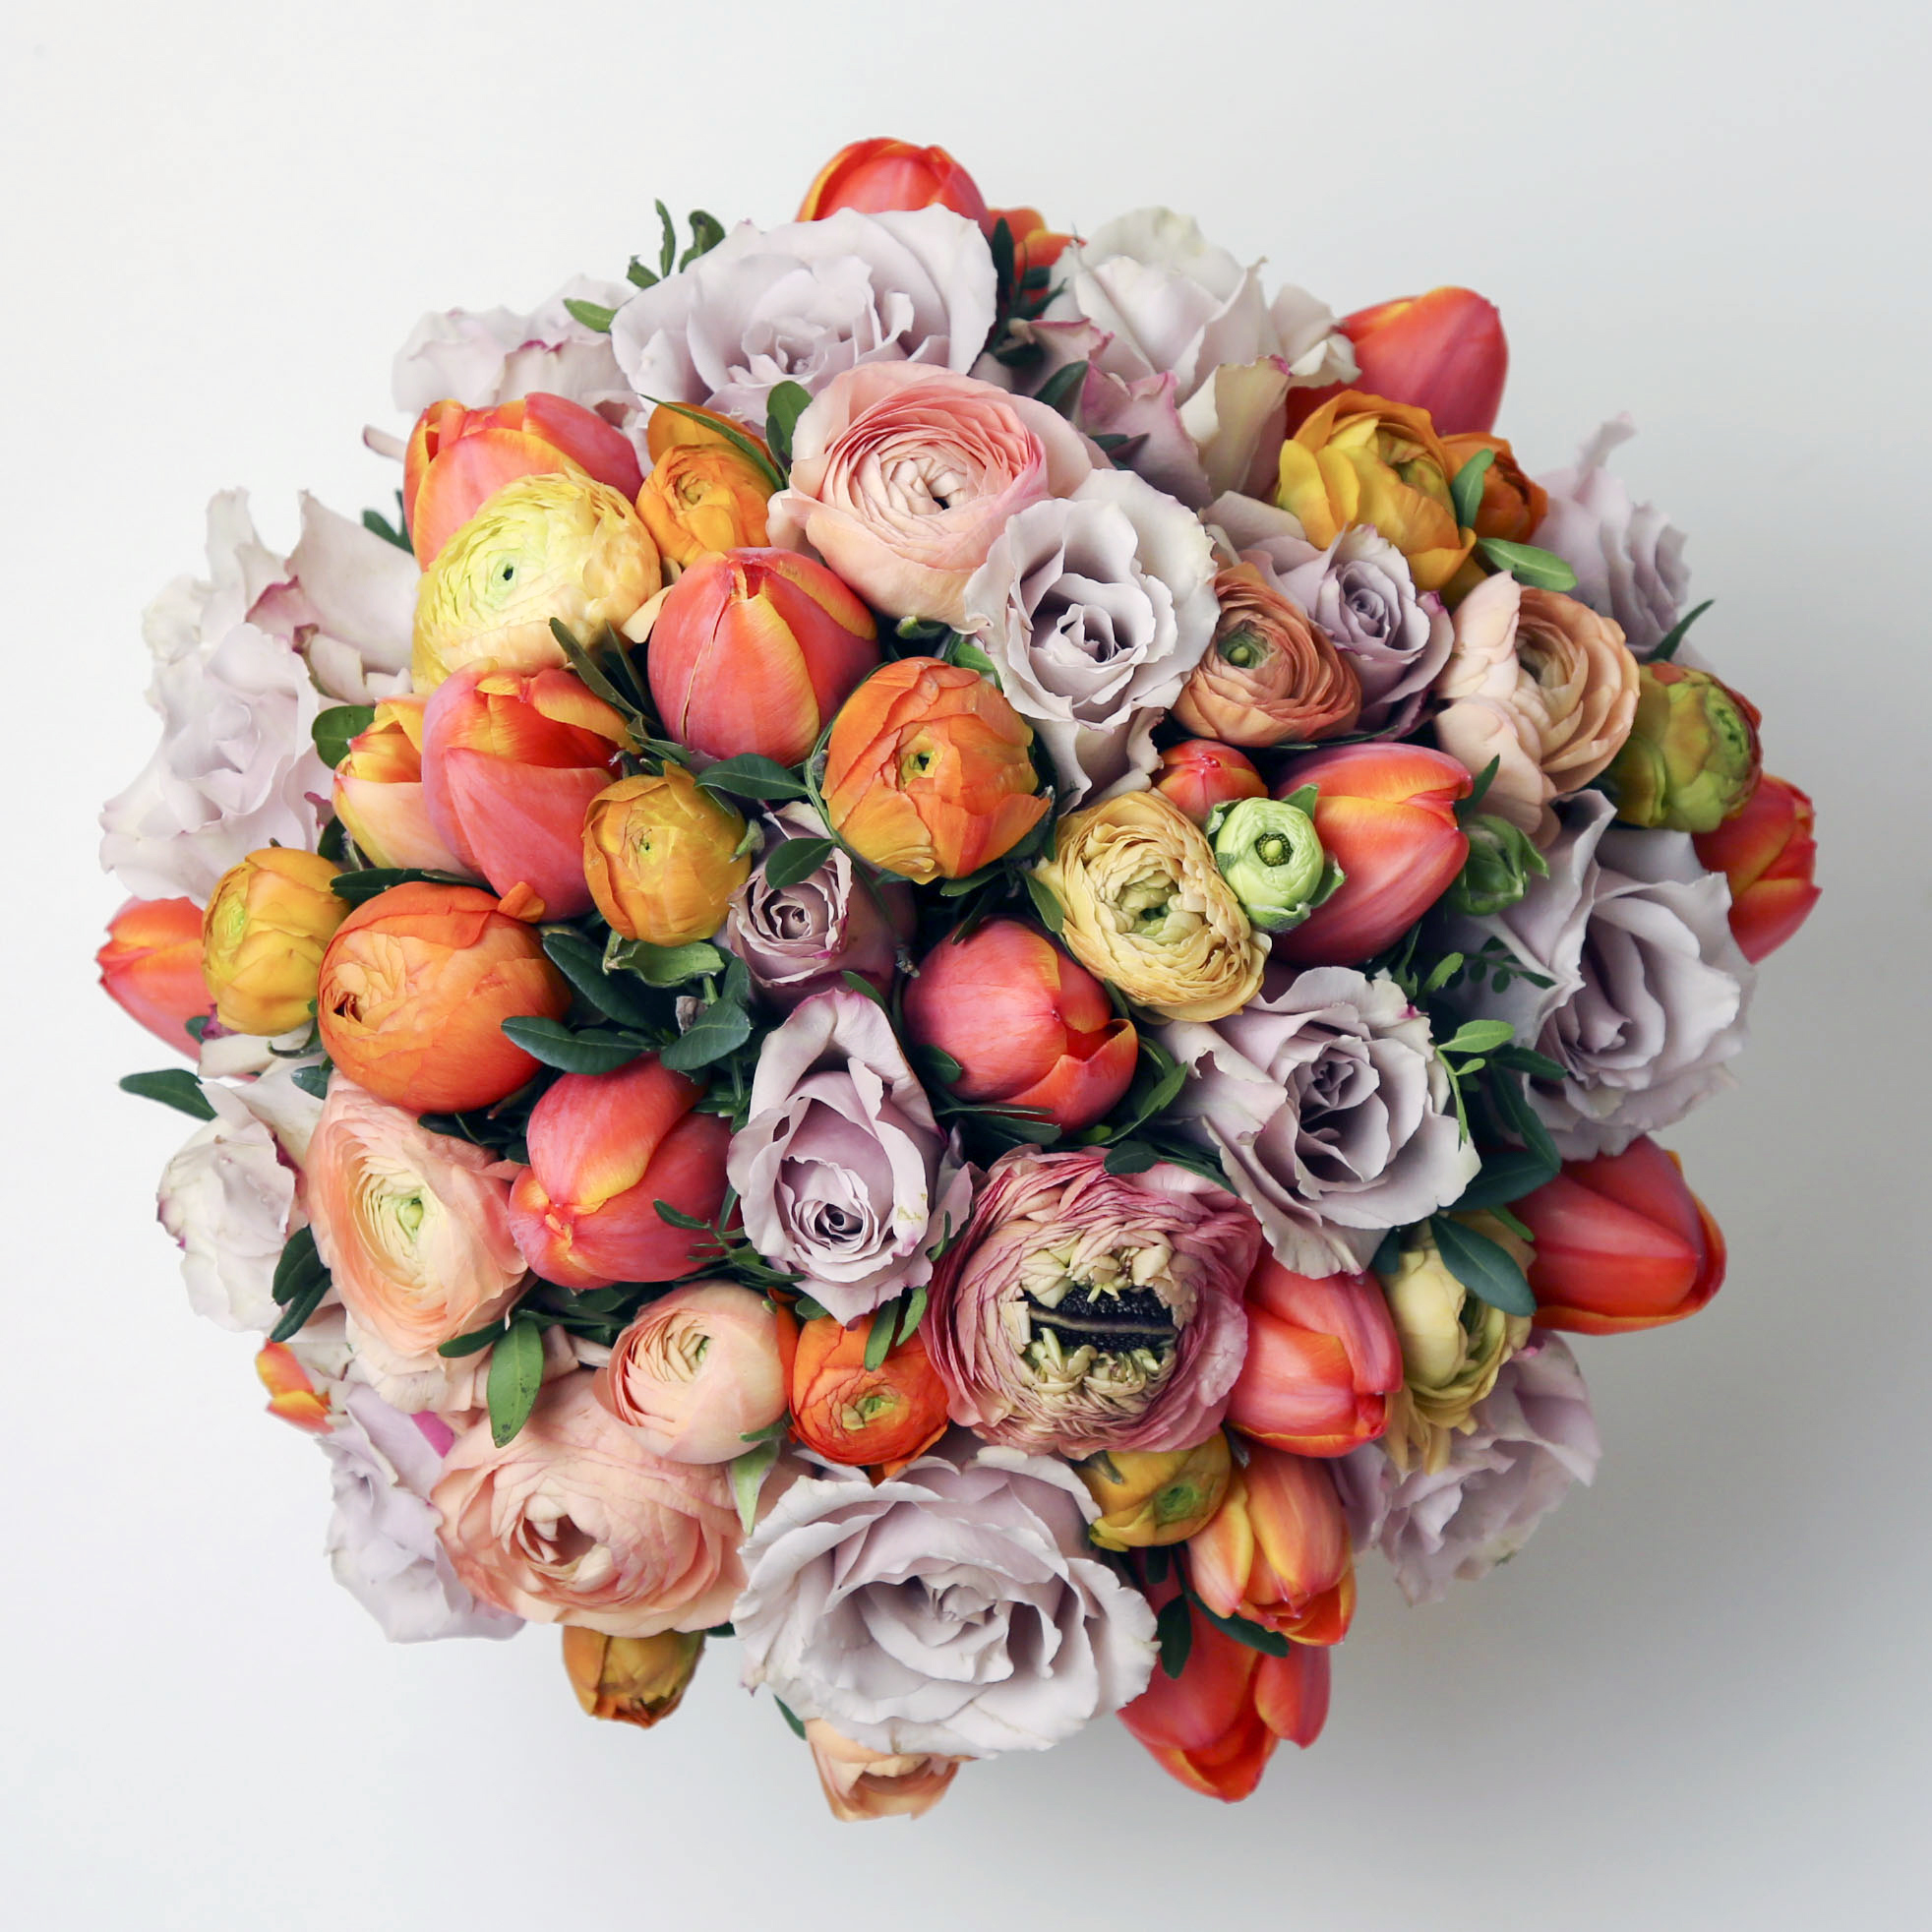 15 online florists for flower deliveries in london right now mcqueens izmirmasajfo